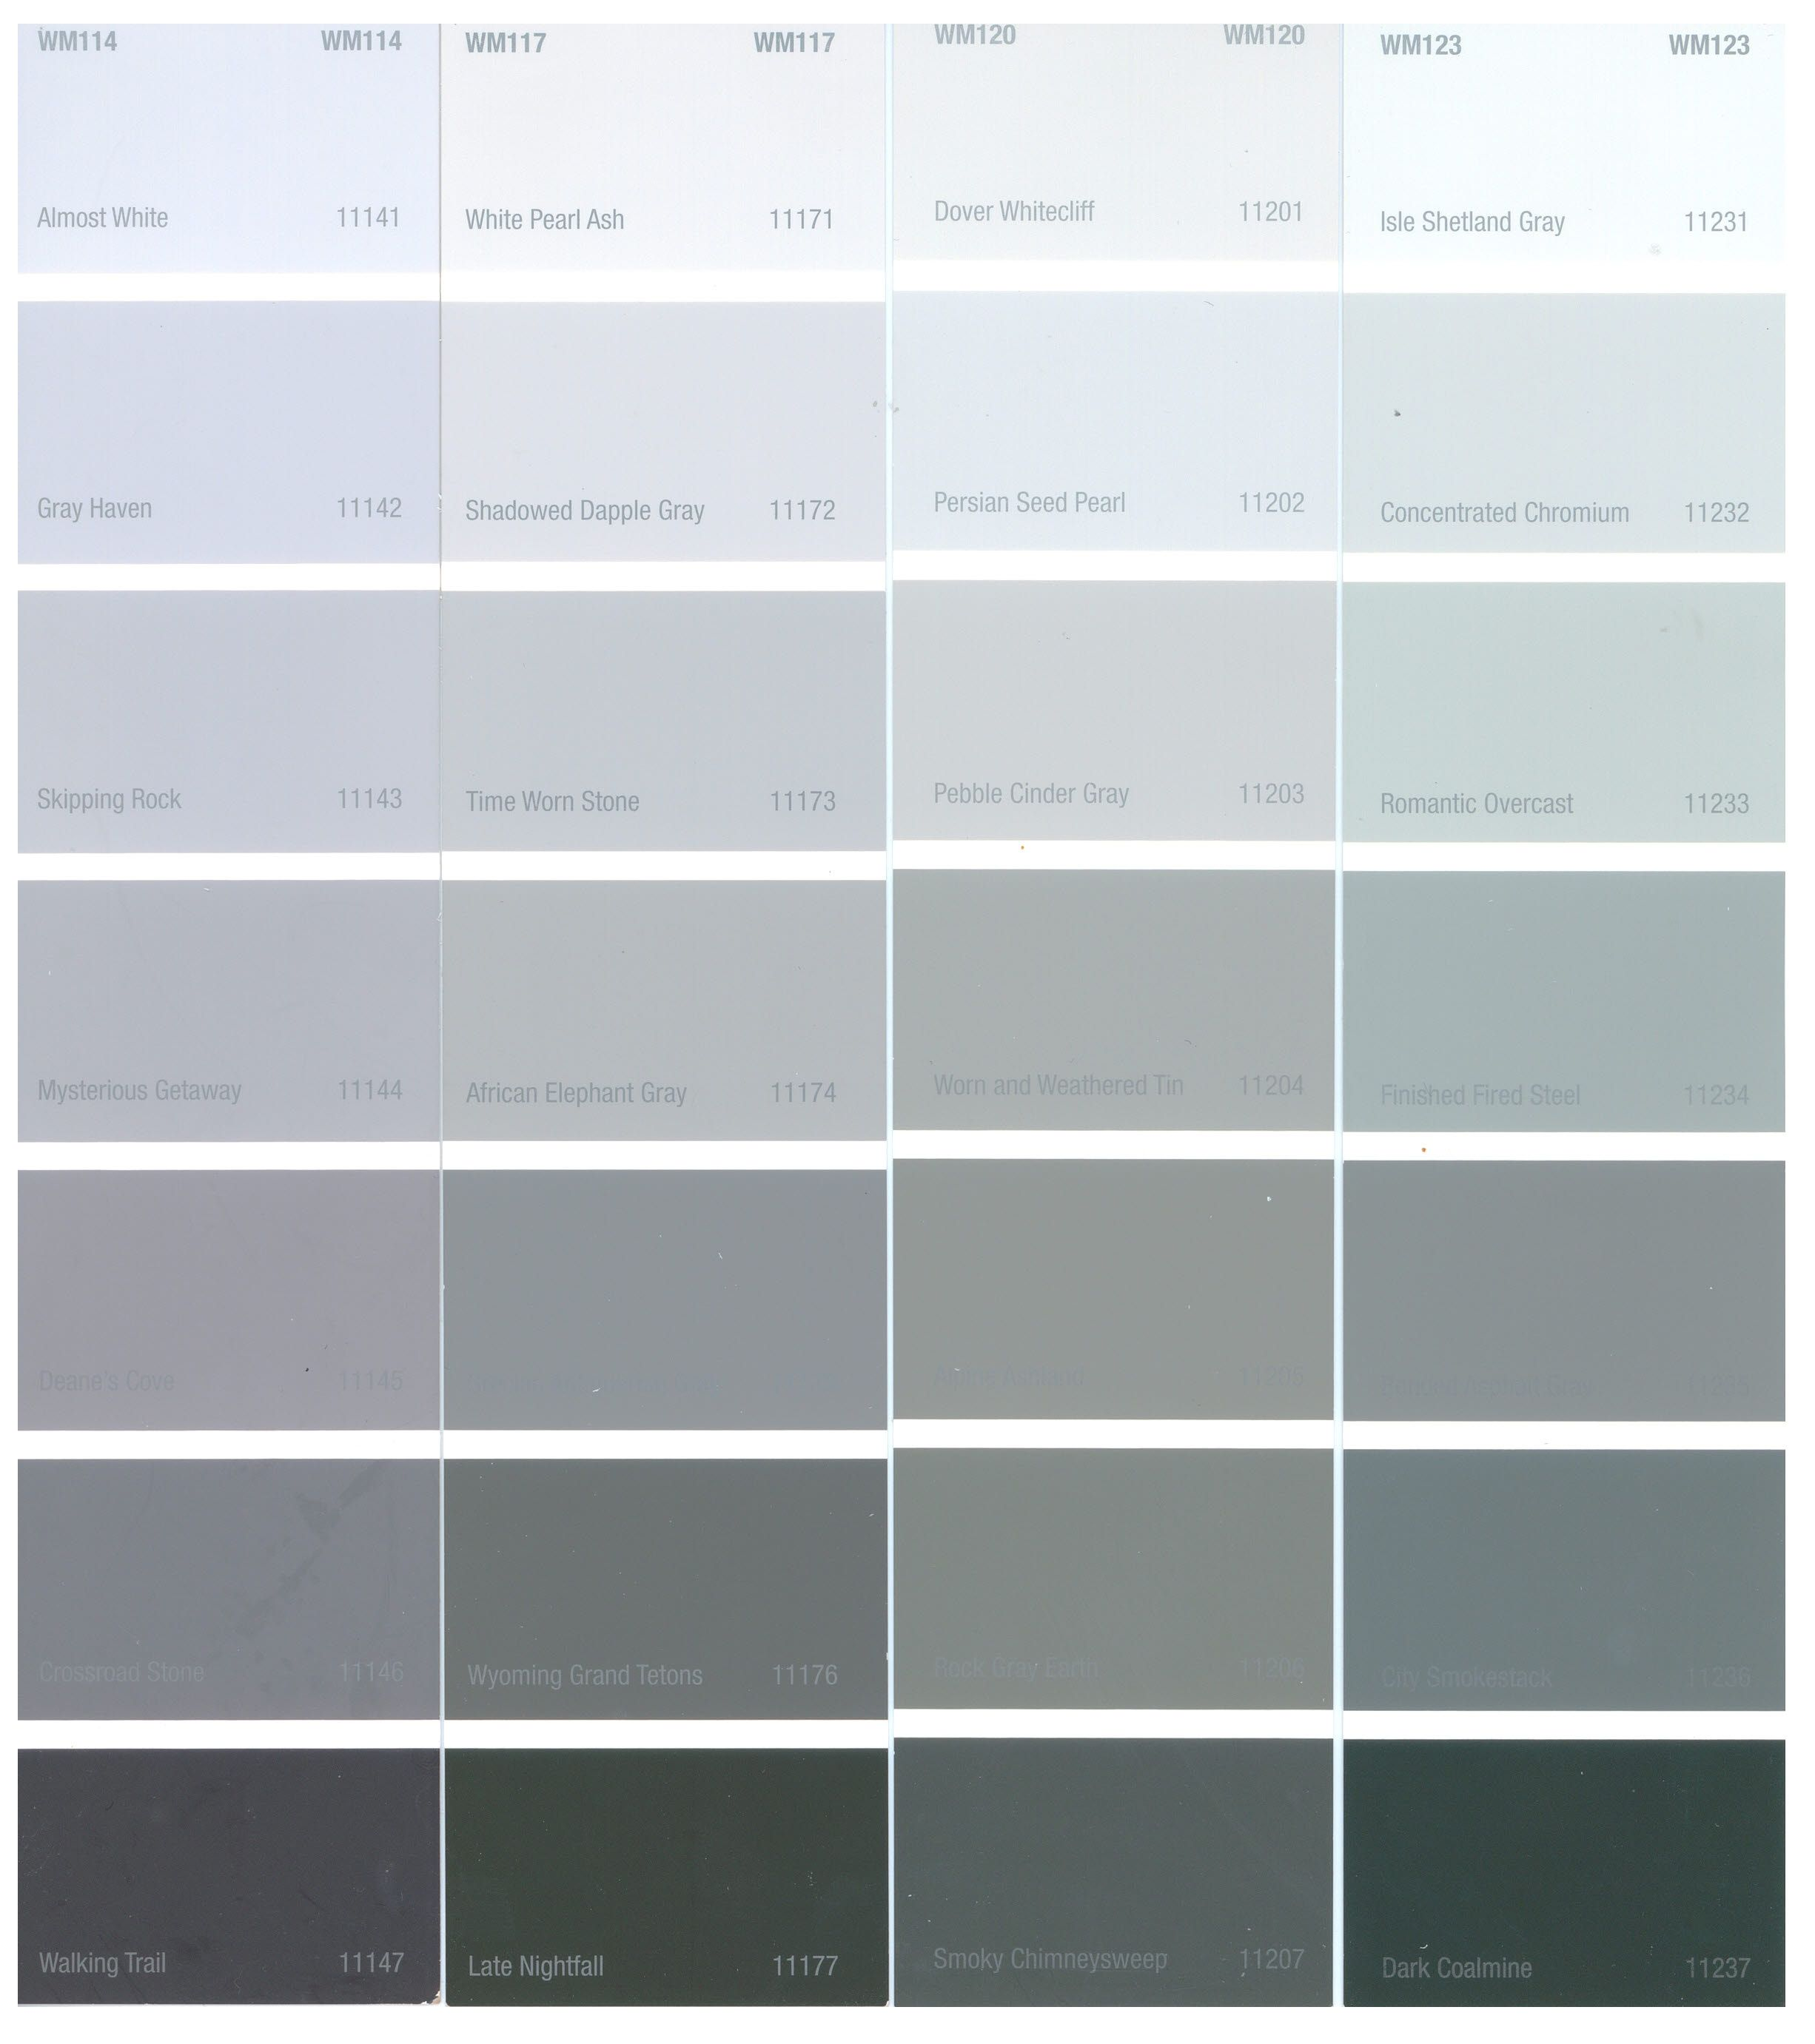 Shads Of Gray Free Photo Shades Of Gray Trunk Tree Gray Free Download